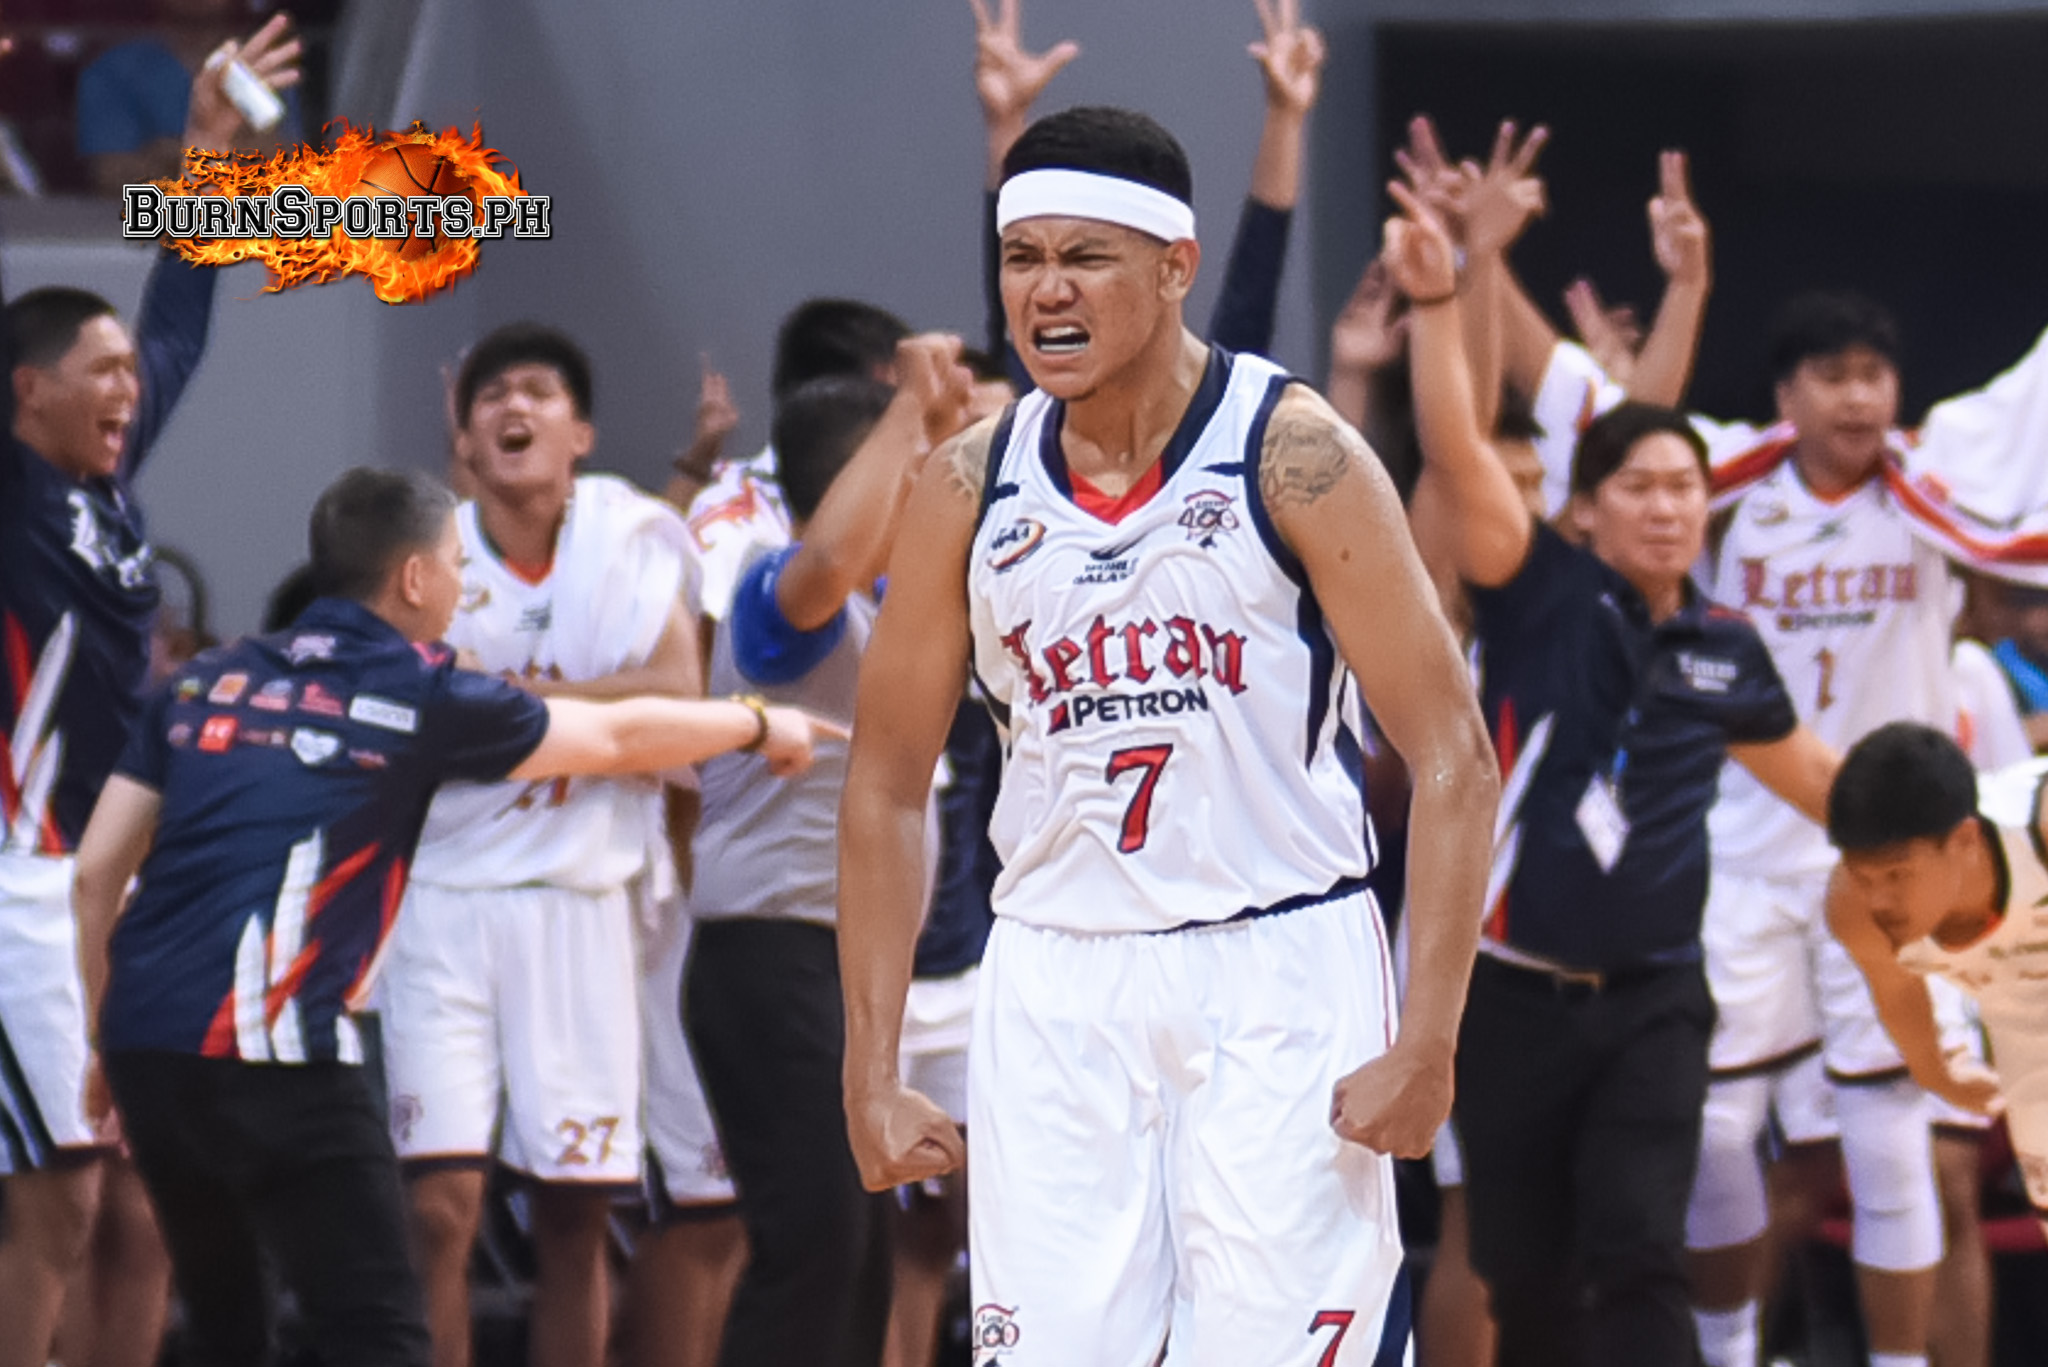 Jerrick Balanza lifts Letran to 1st win with career performance